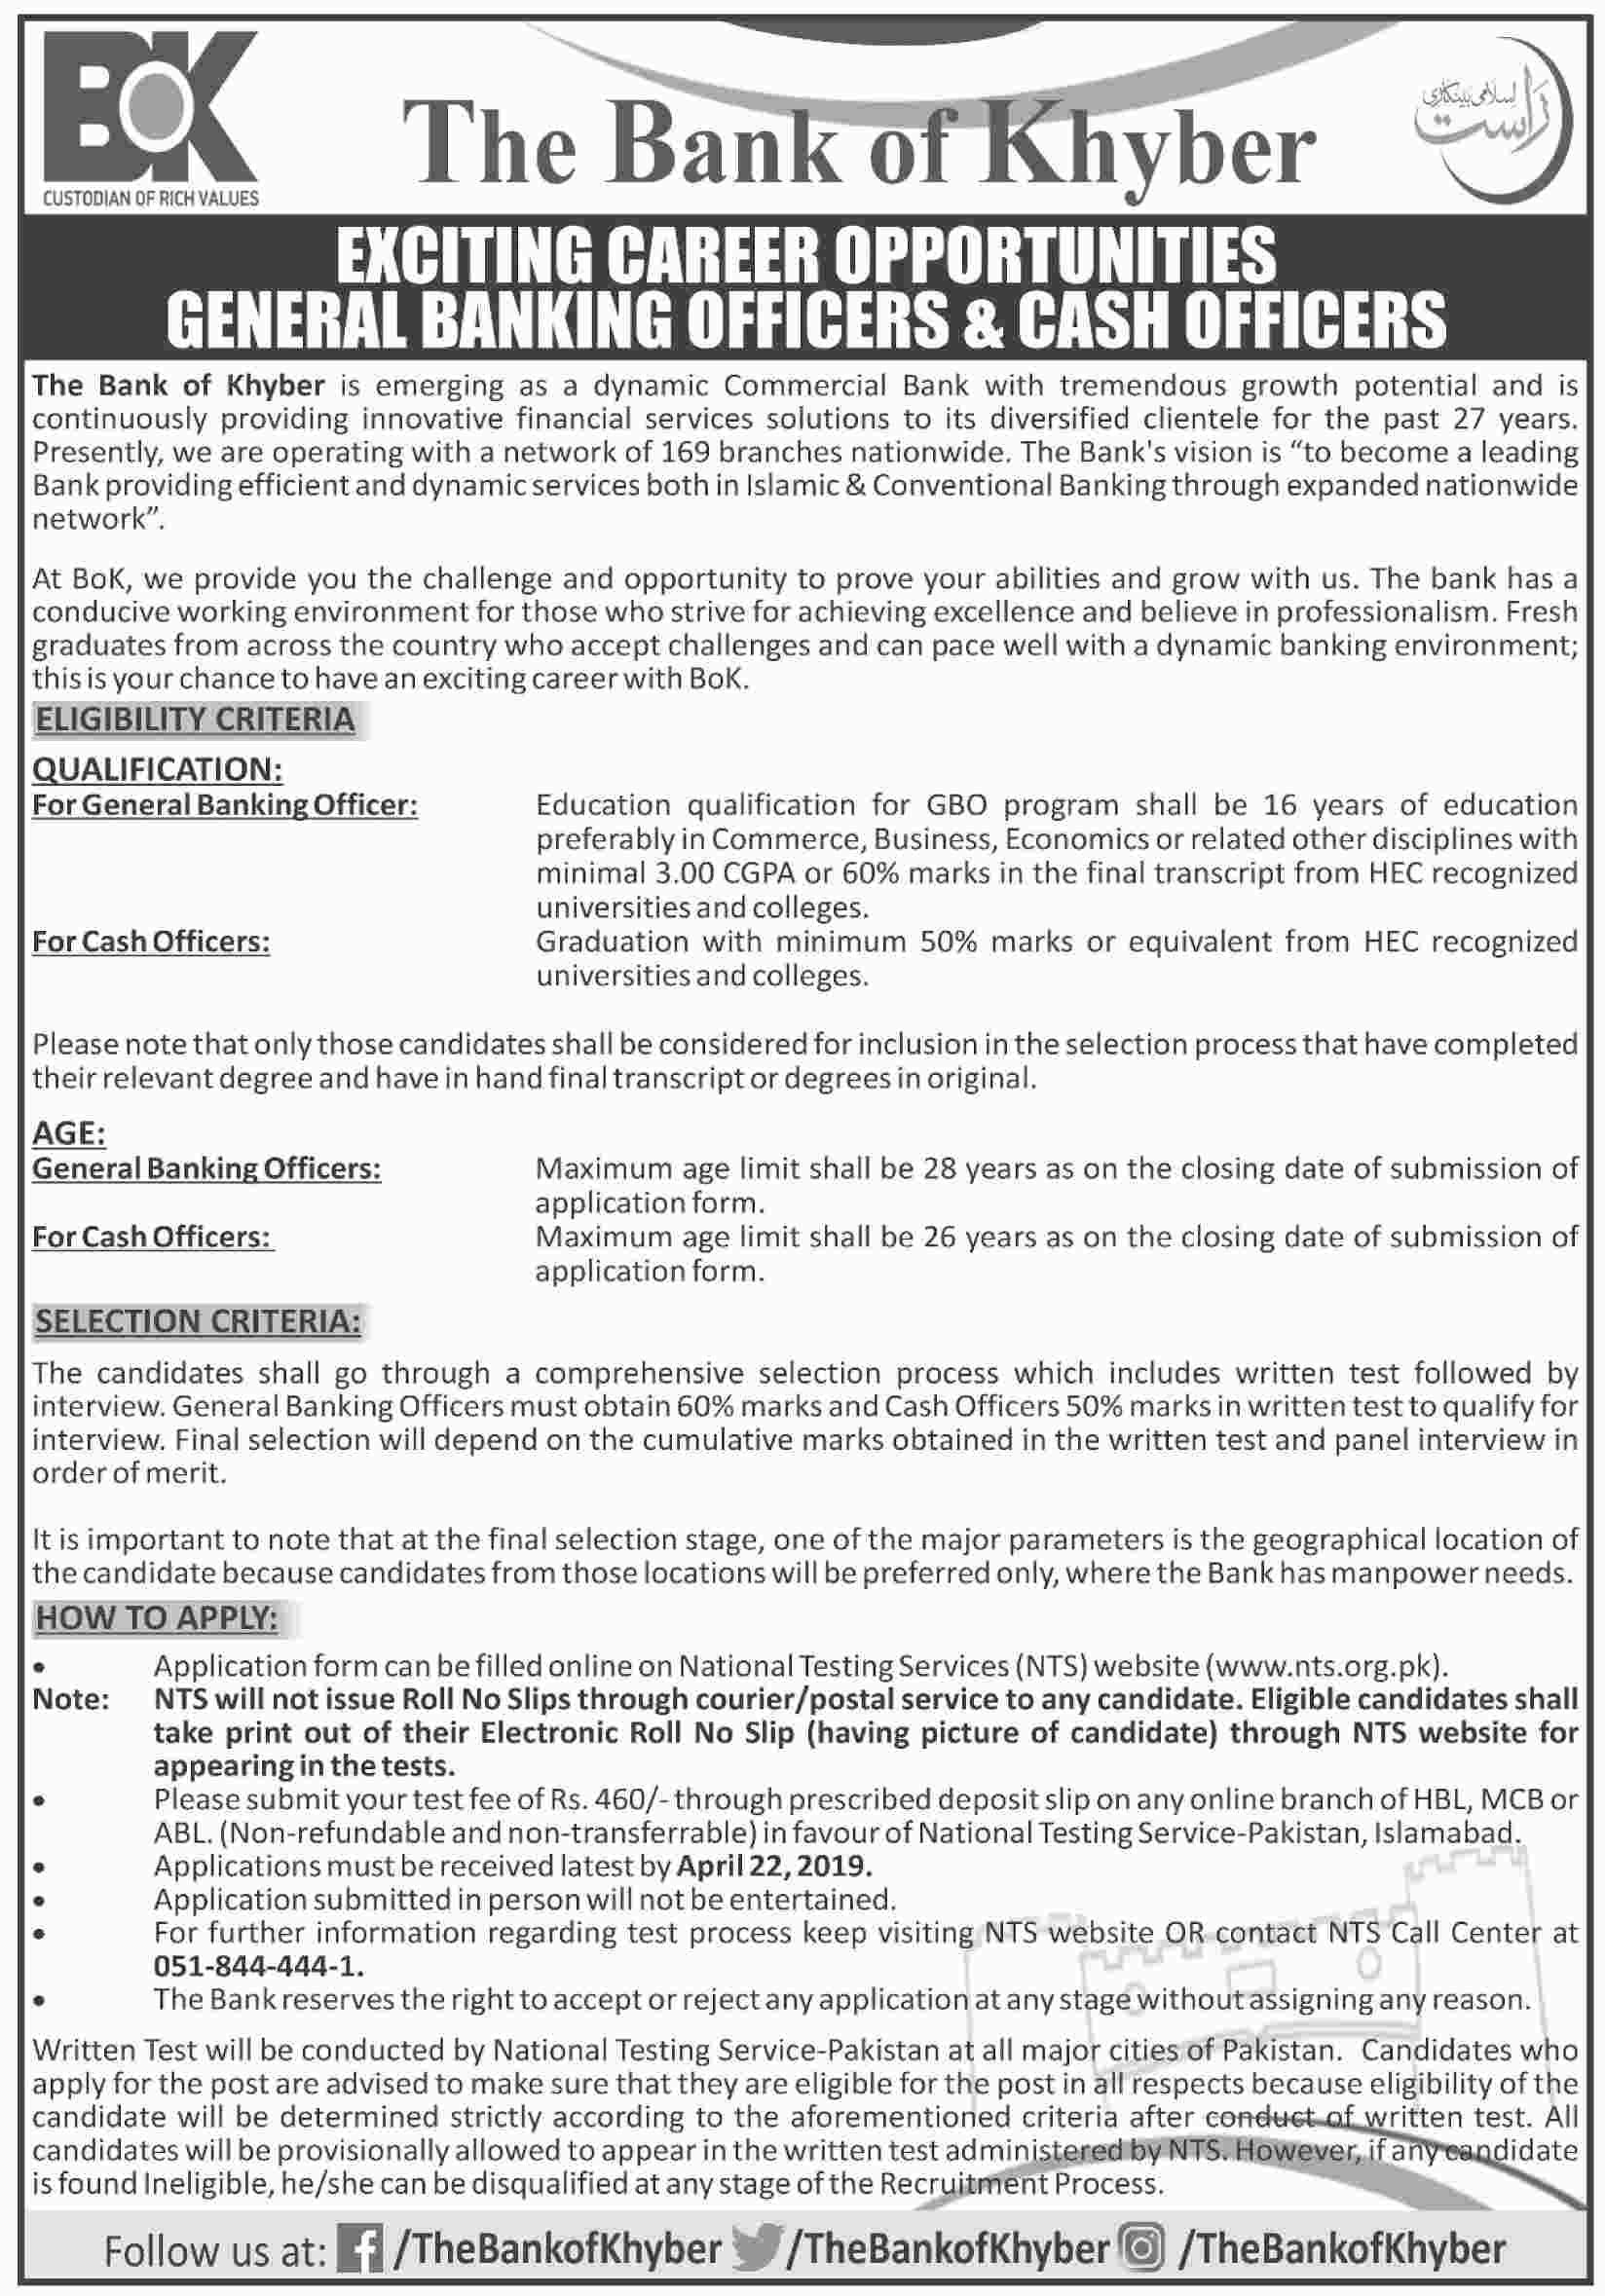 BOK-dw Ogdcl Application Form For Job on free generic, blank generic, part time,